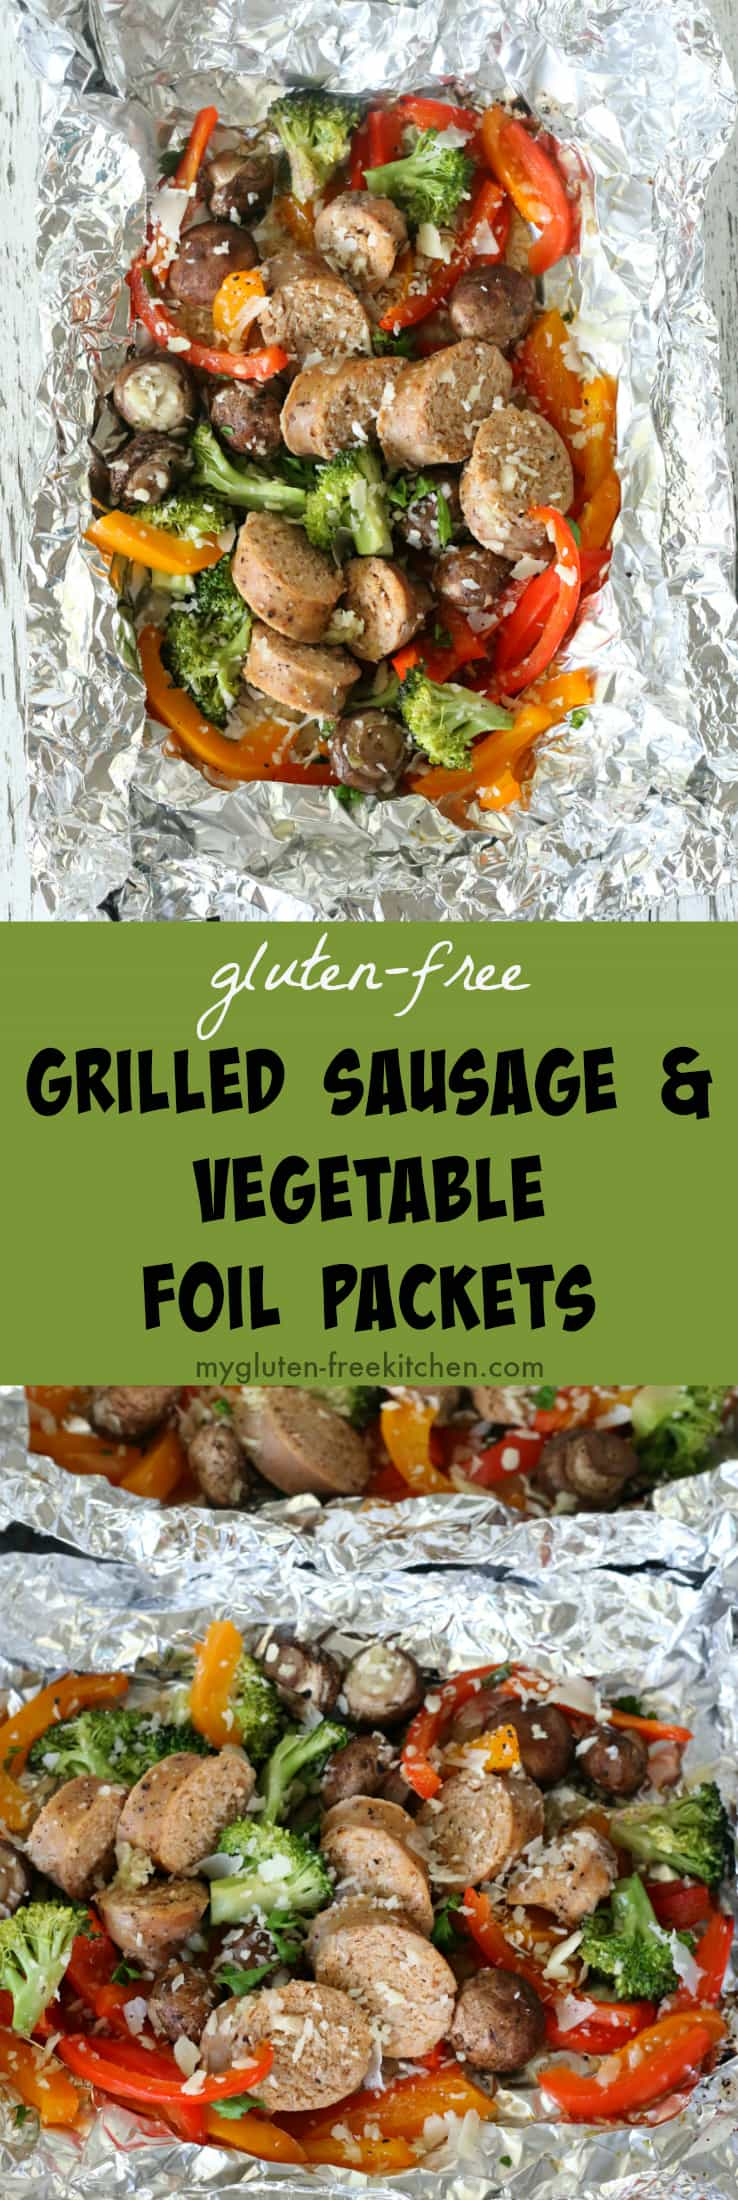 Gluten-free Grilled Sausage and Vegetable Foil Packets recipe